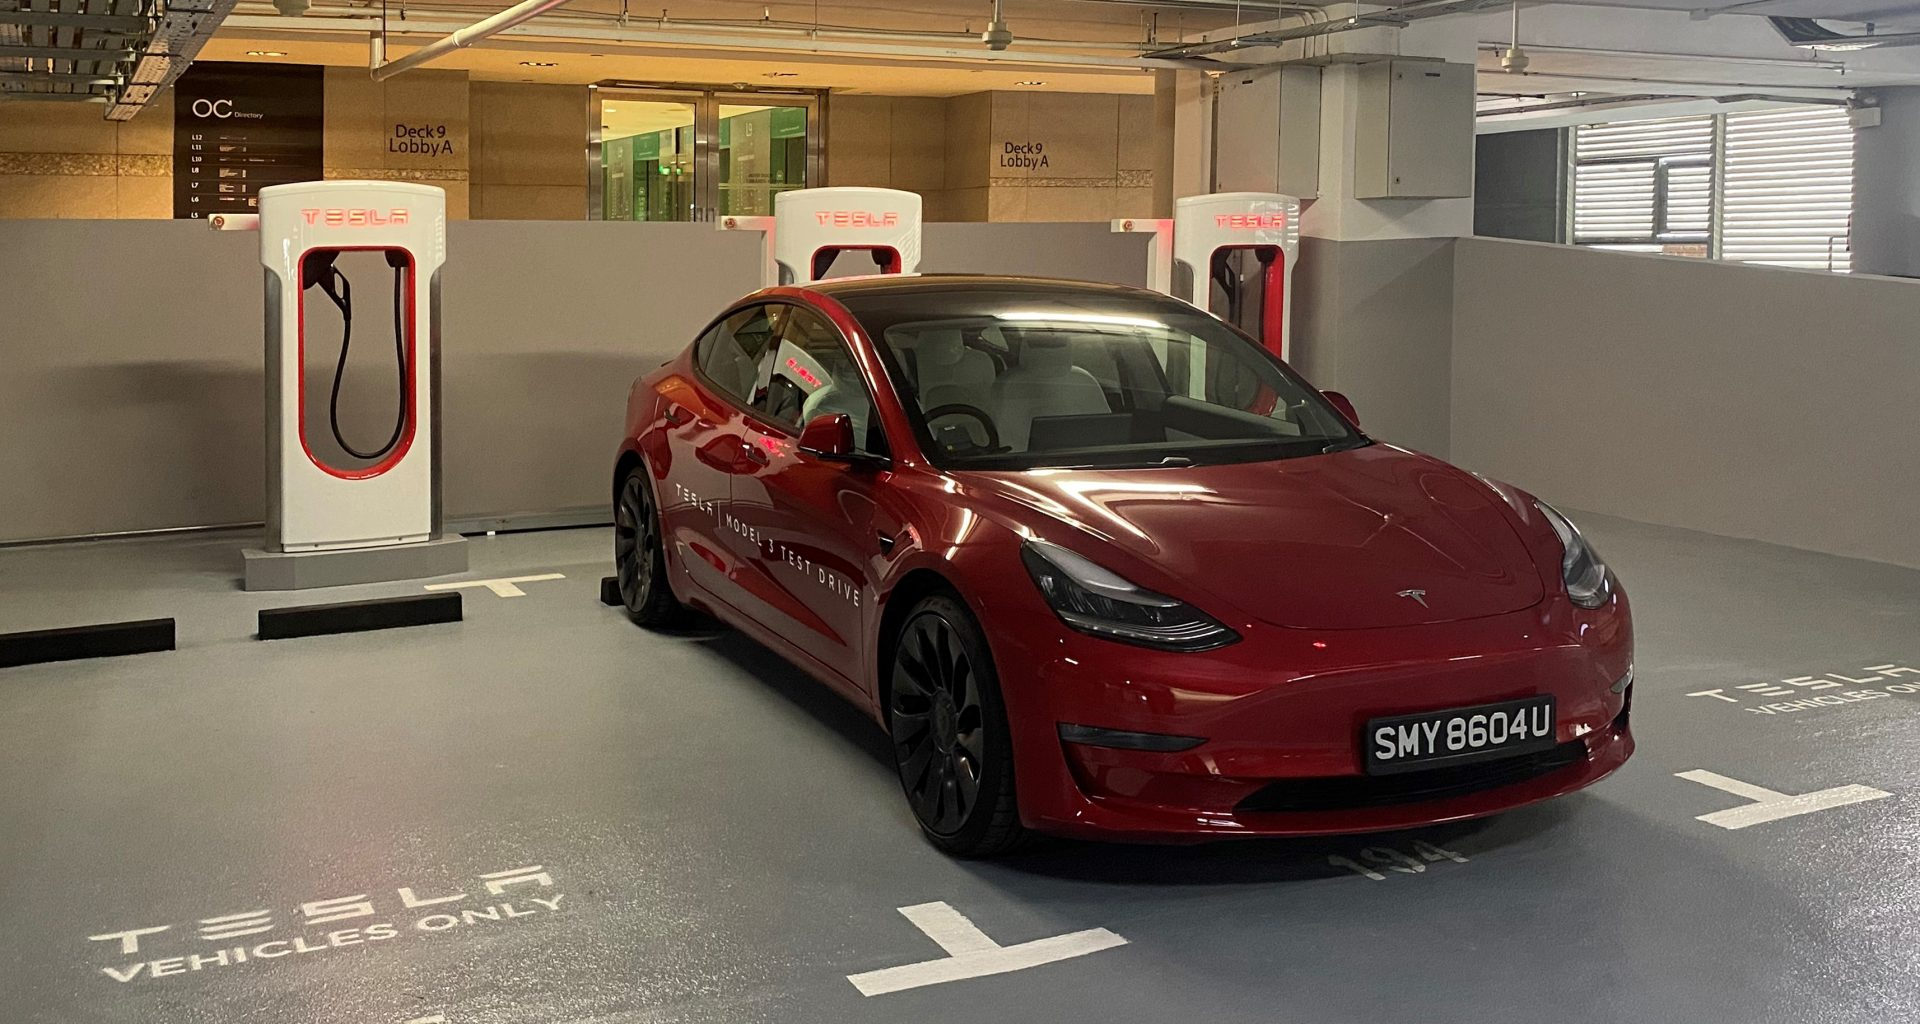 New Tesla V3 Superchargers charging station is now open to public at Orchard Central and available 24/7 - Alvinology